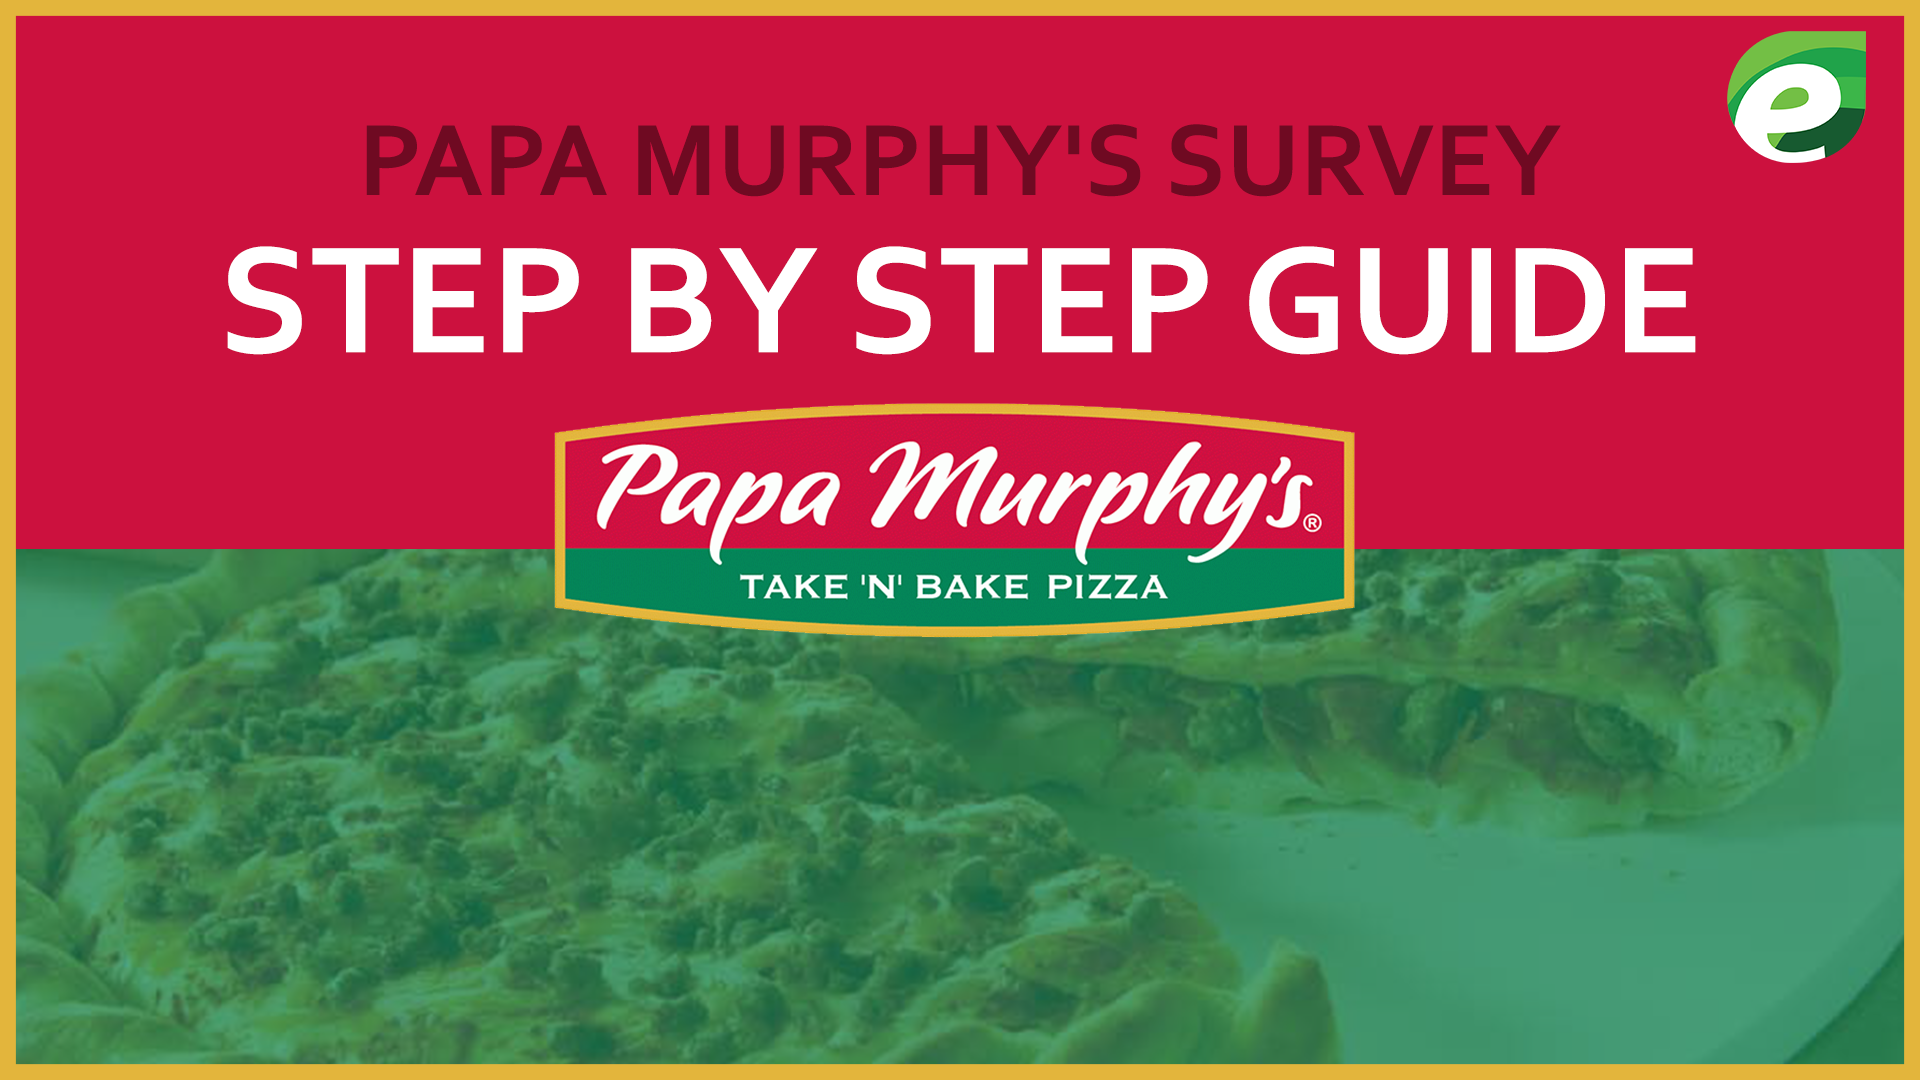 papasurvey - step by step guide